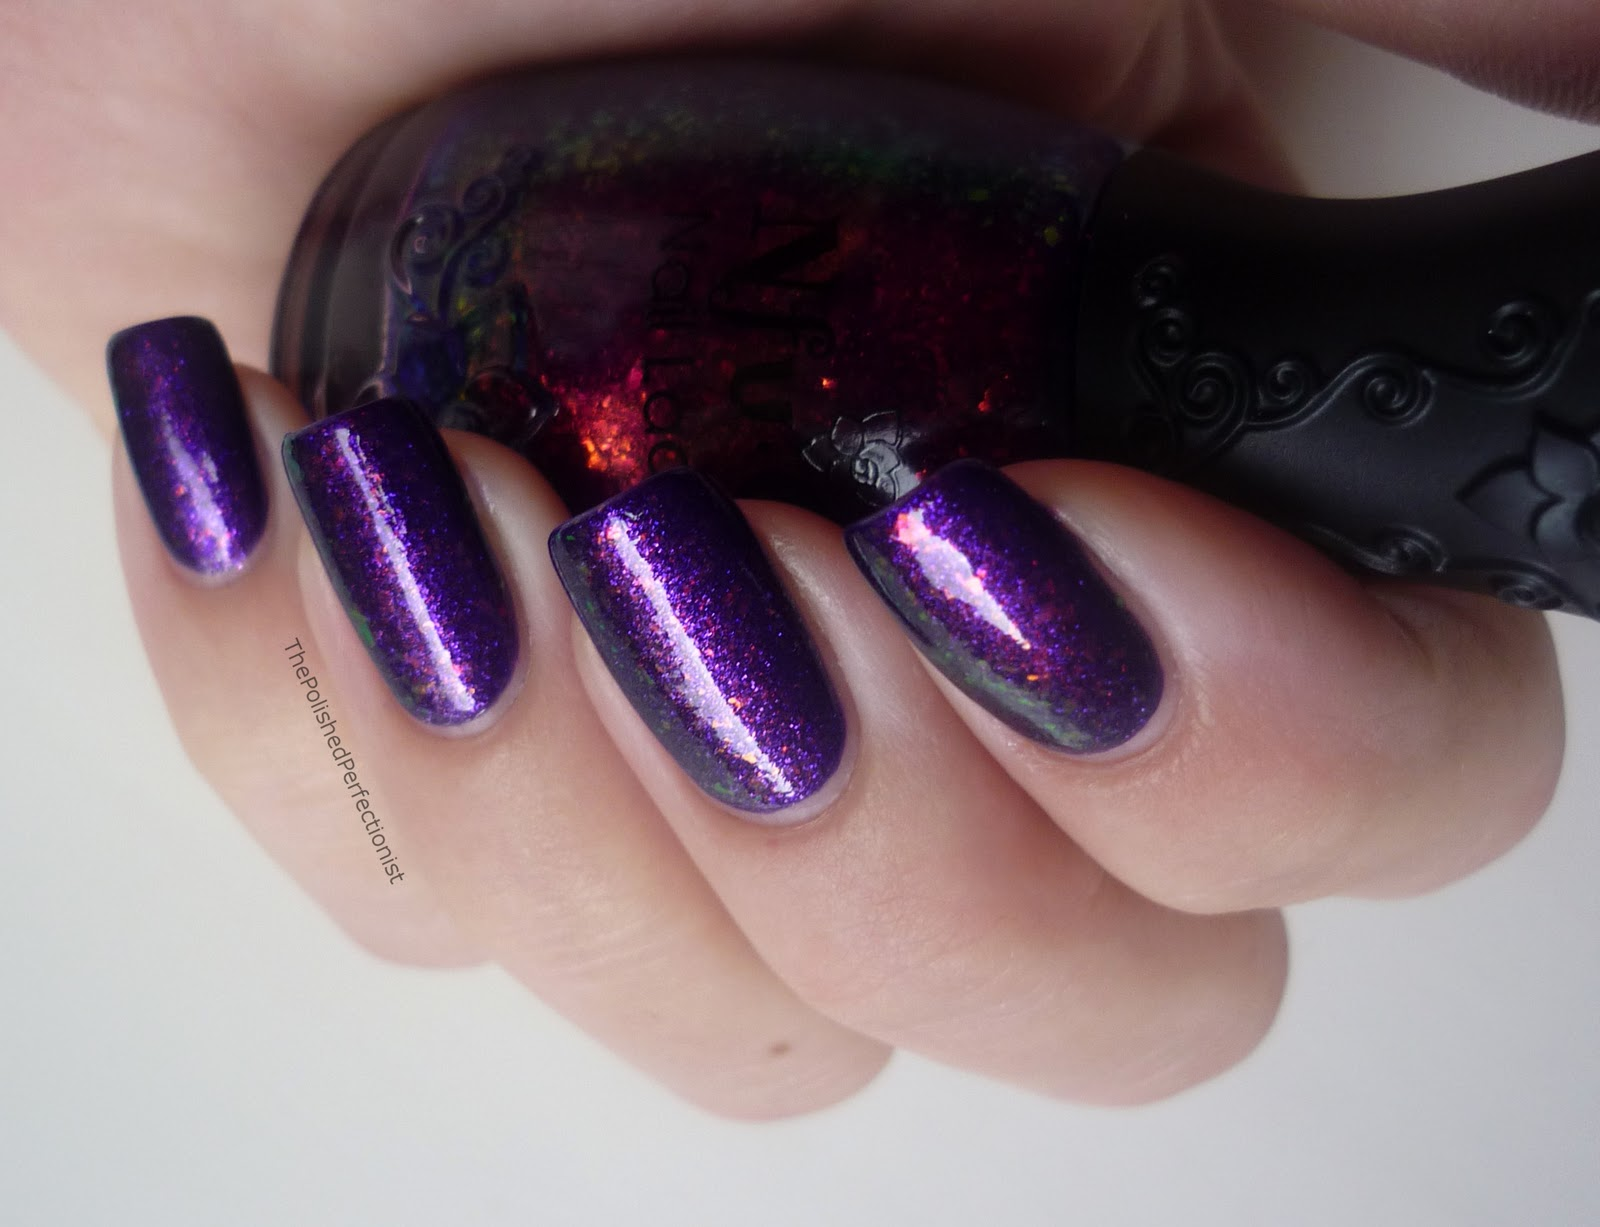 The Polished Perfectionist: One Polish To Rule Them All - Nfu Oh no. 51